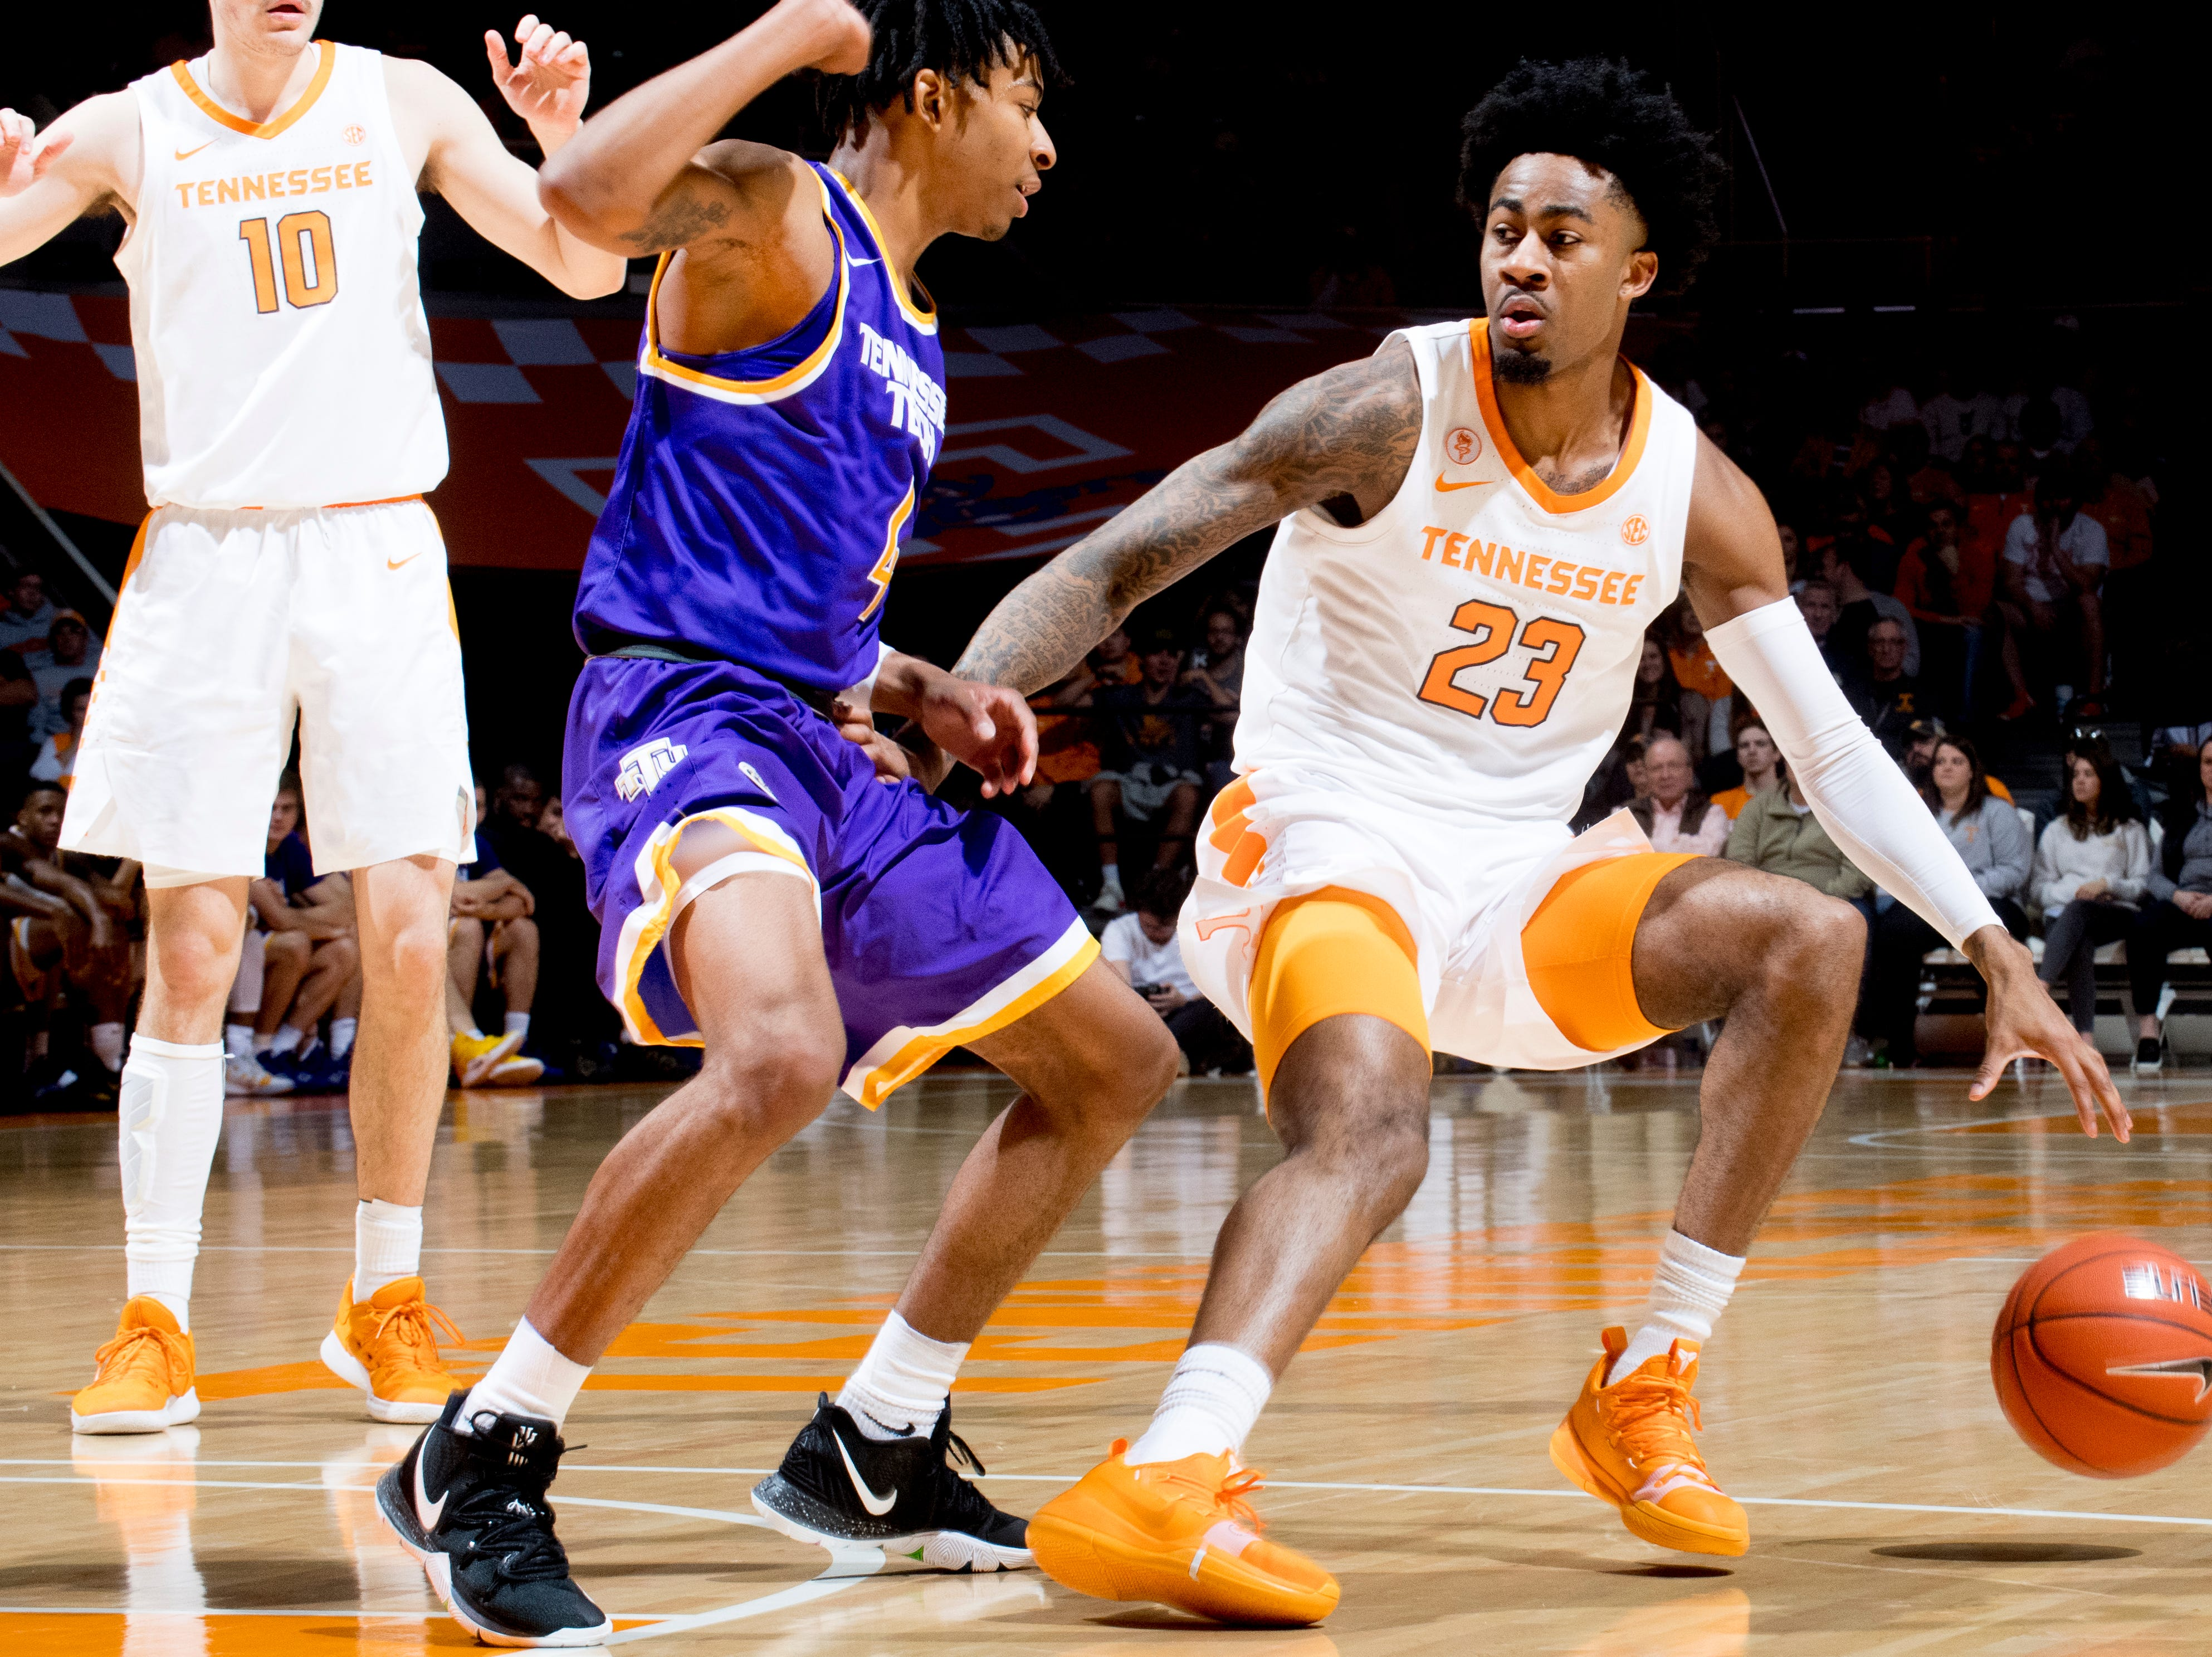 Tennessee guard Jordan Bowden (23) dribbles the ball as Tennessee Tech guard Jr. Clay (4) defends during a game between Tennessee and Tennessee Tech at Thompson-Boling Arena in Knoxville, Tennessee on Saturday, December 29, 2018.